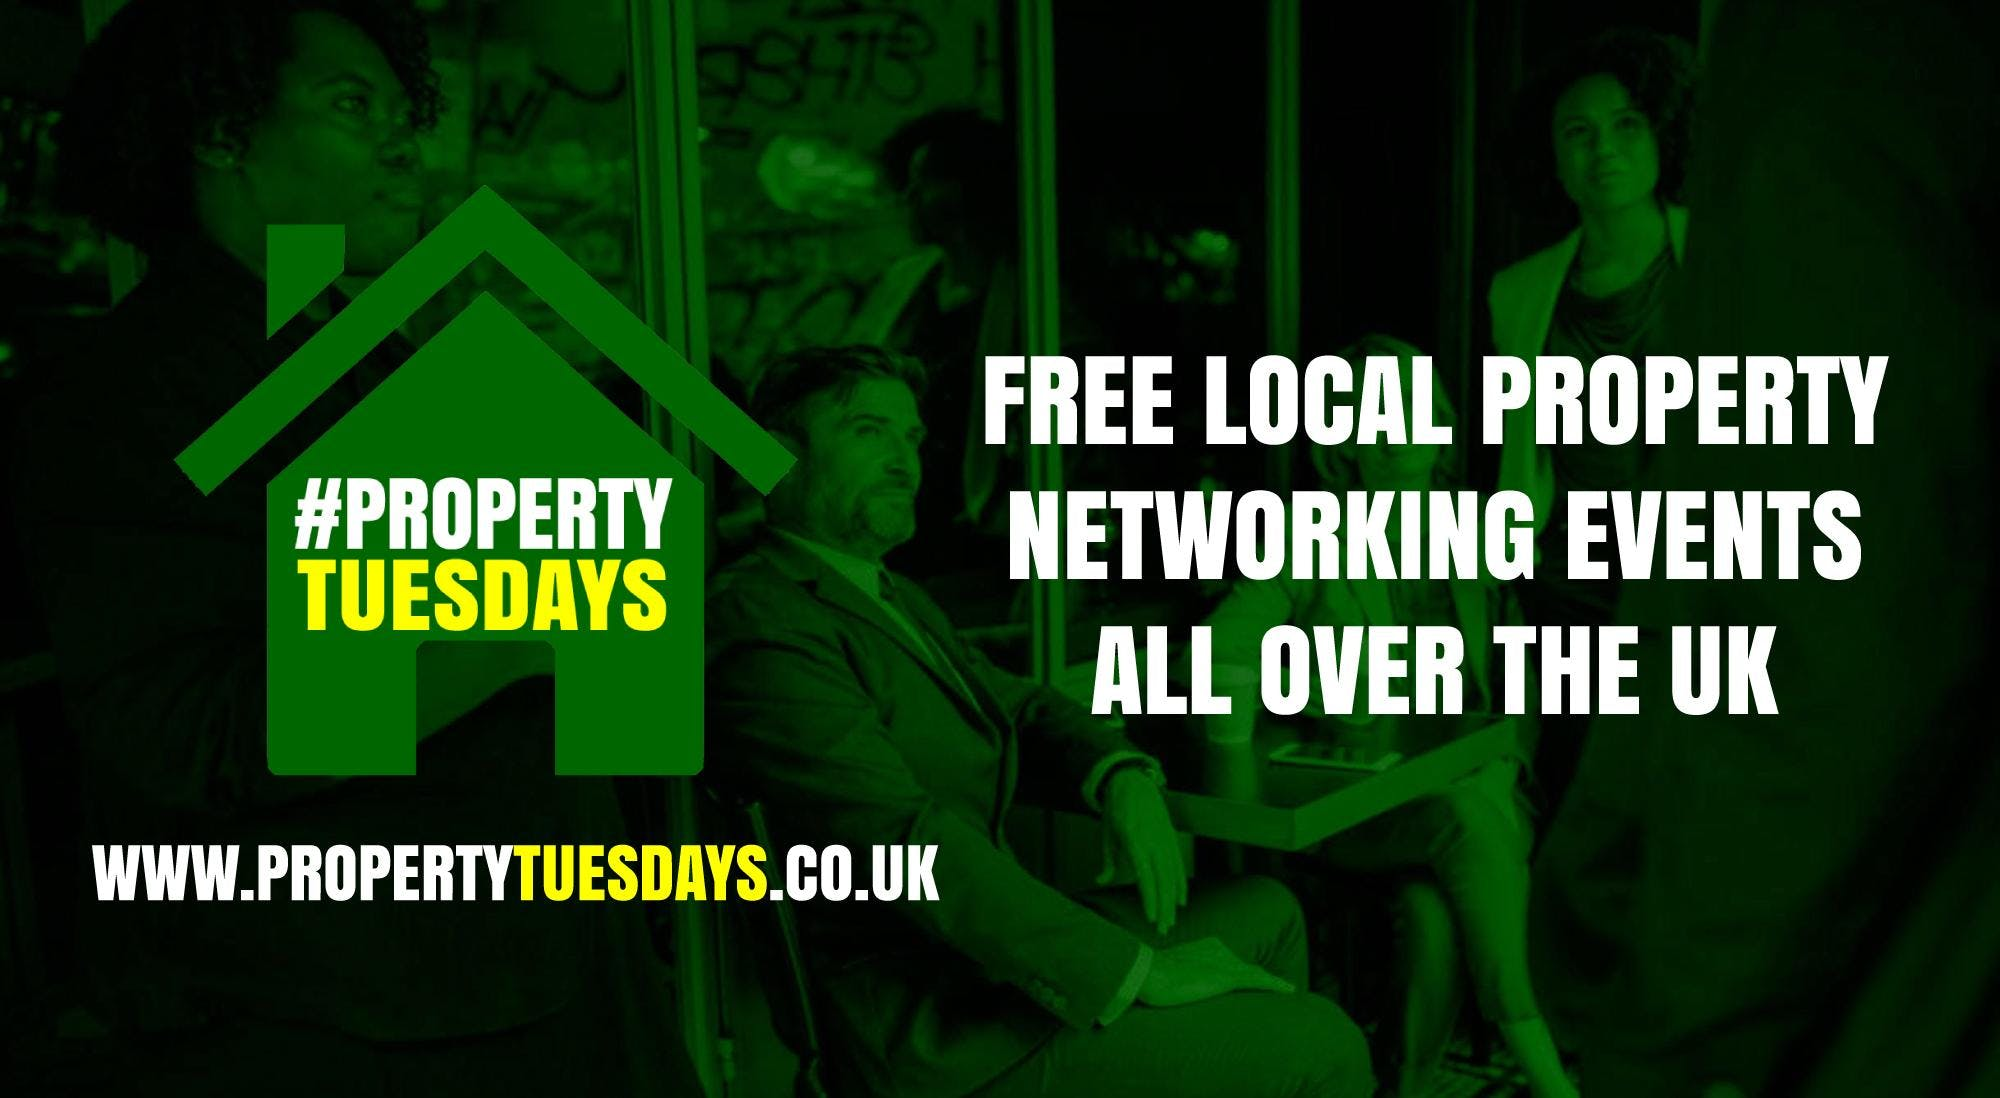 Property Tuesdays! Free property networking event in Otley